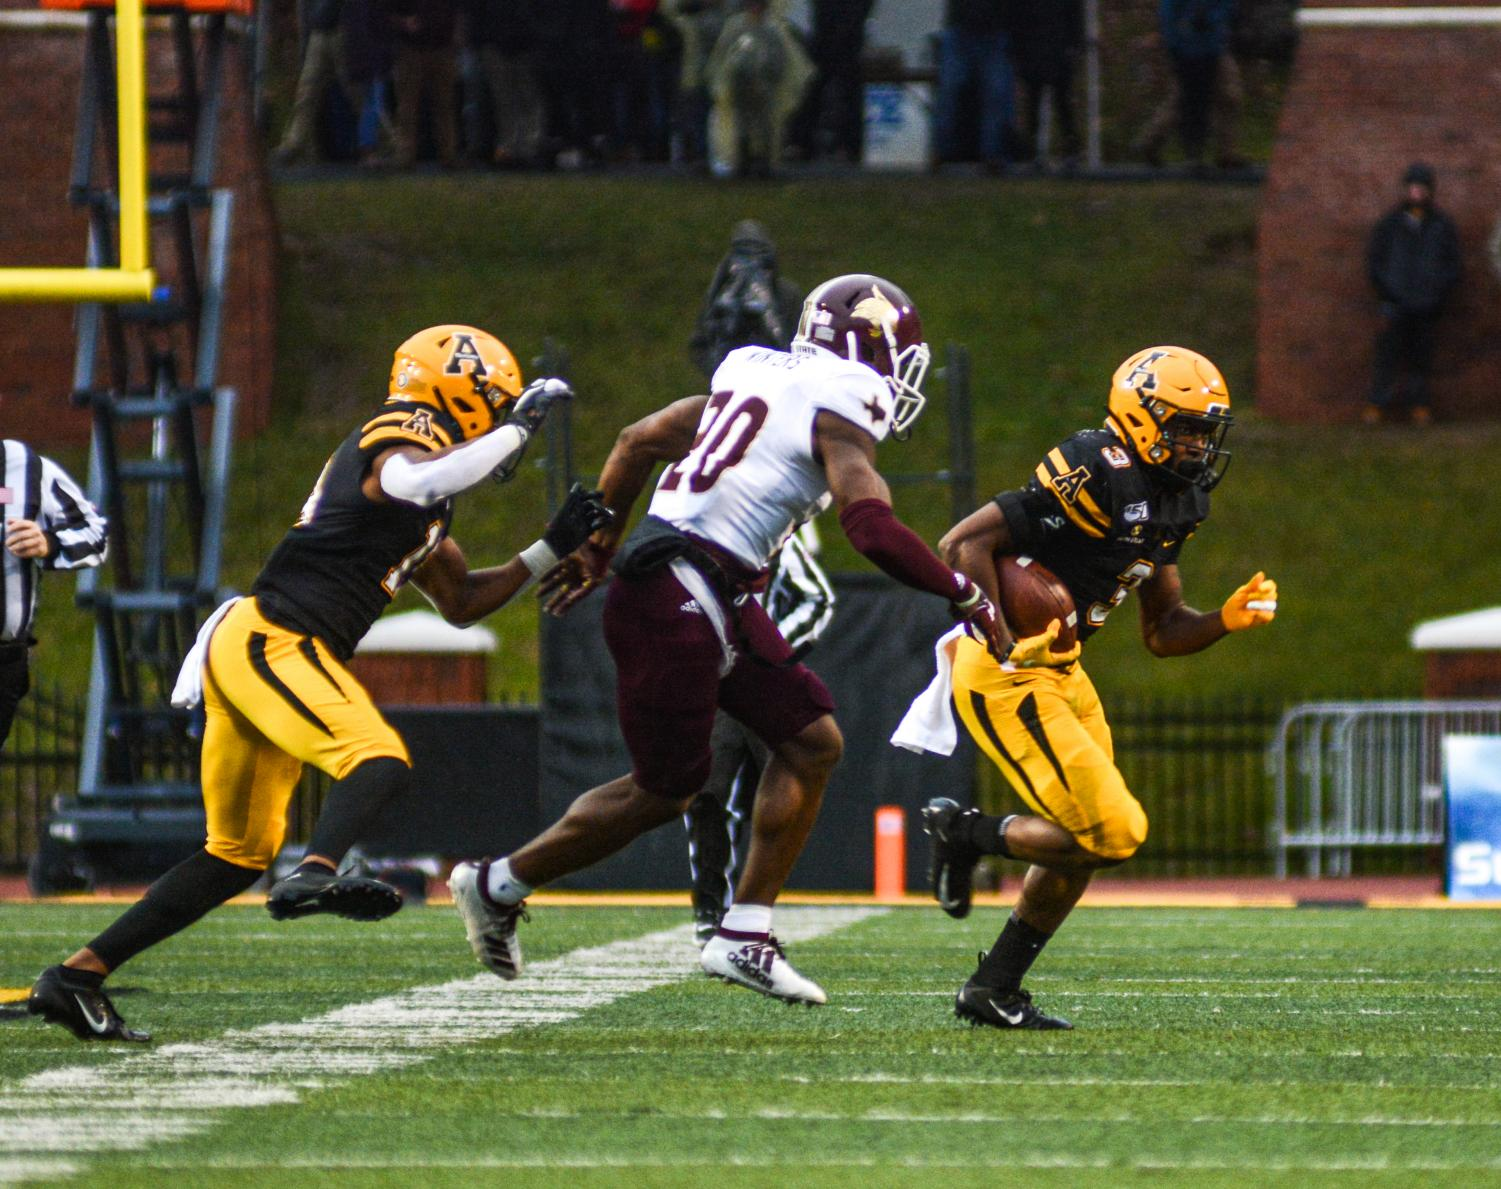 Junior running back Darrynton Evans looks for a hole during App State's 35-13 win over Texas State on Nov. 24.